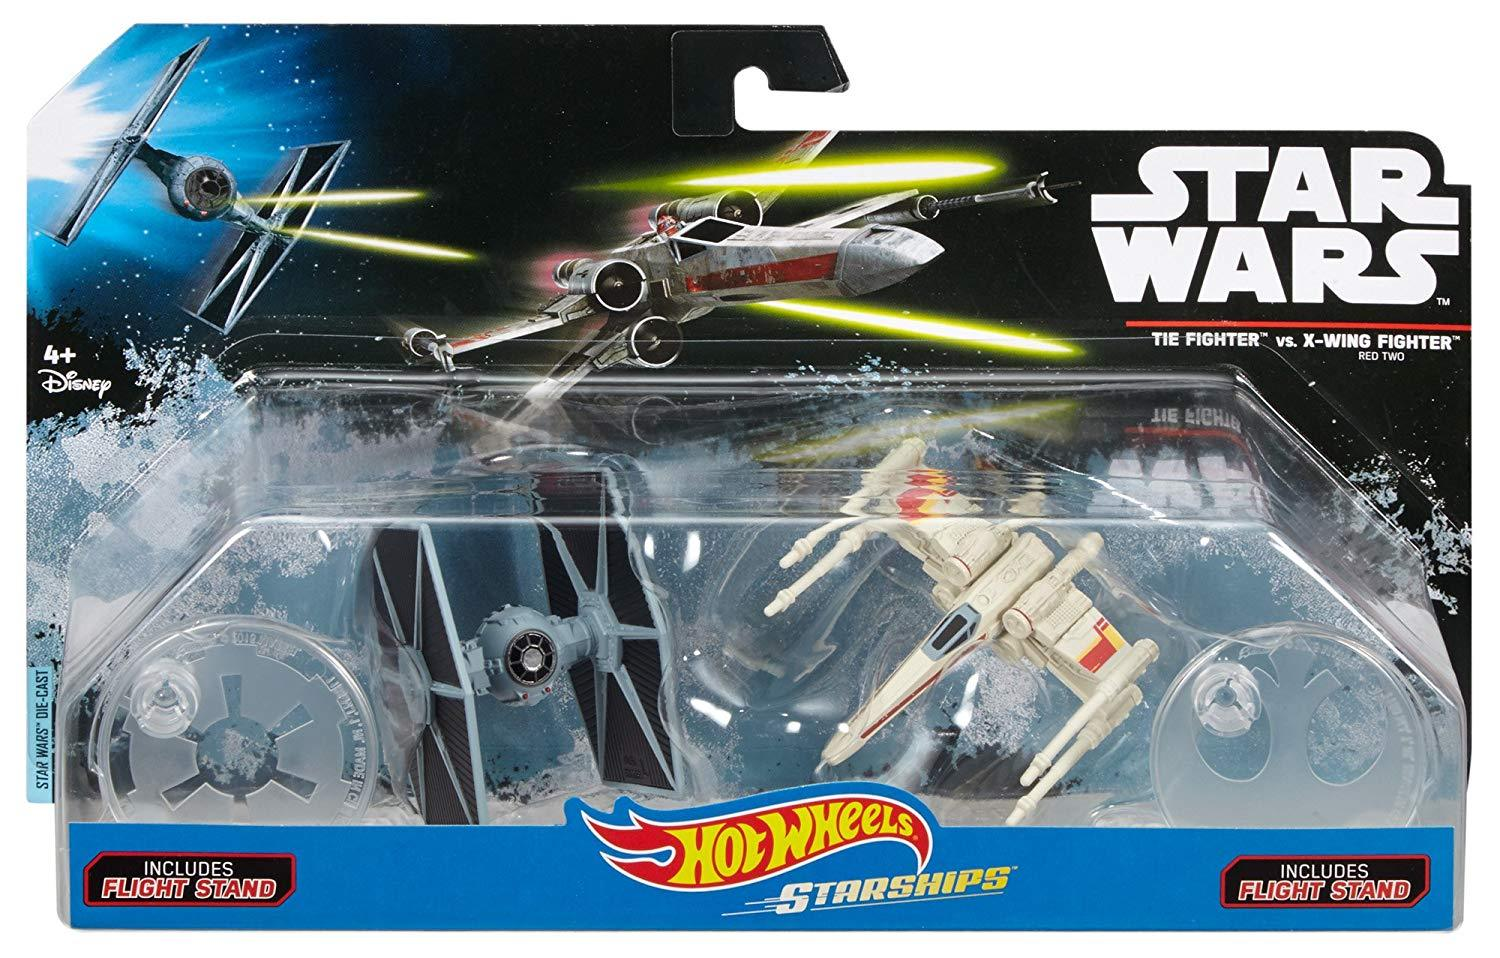 Disney Diecast X Wing Hot Wheels Tie Fighter Vs X Wing Fighter Products X